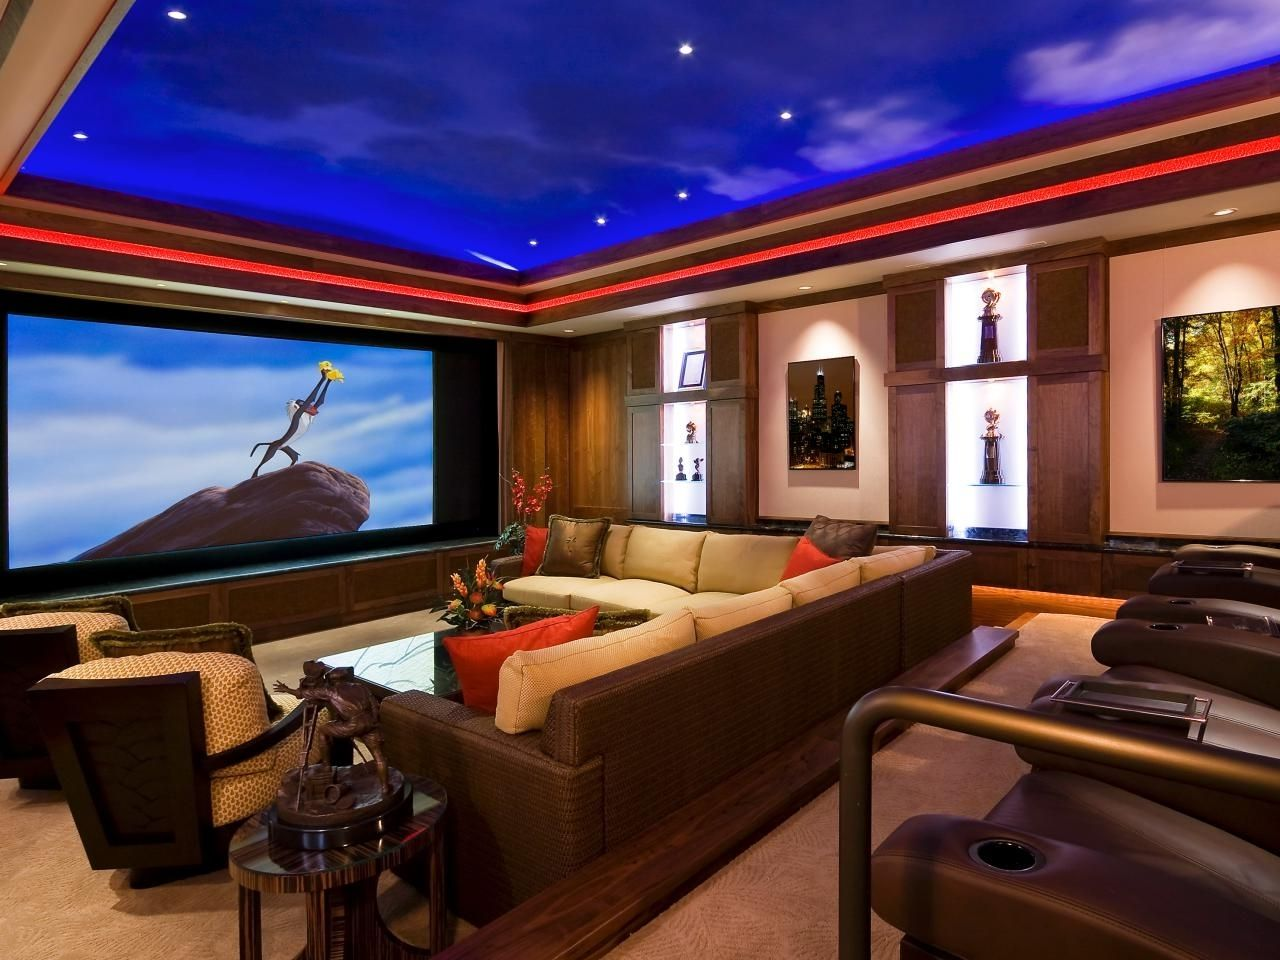 home theater room design. Home Theatre Room Design Decoration Theater H